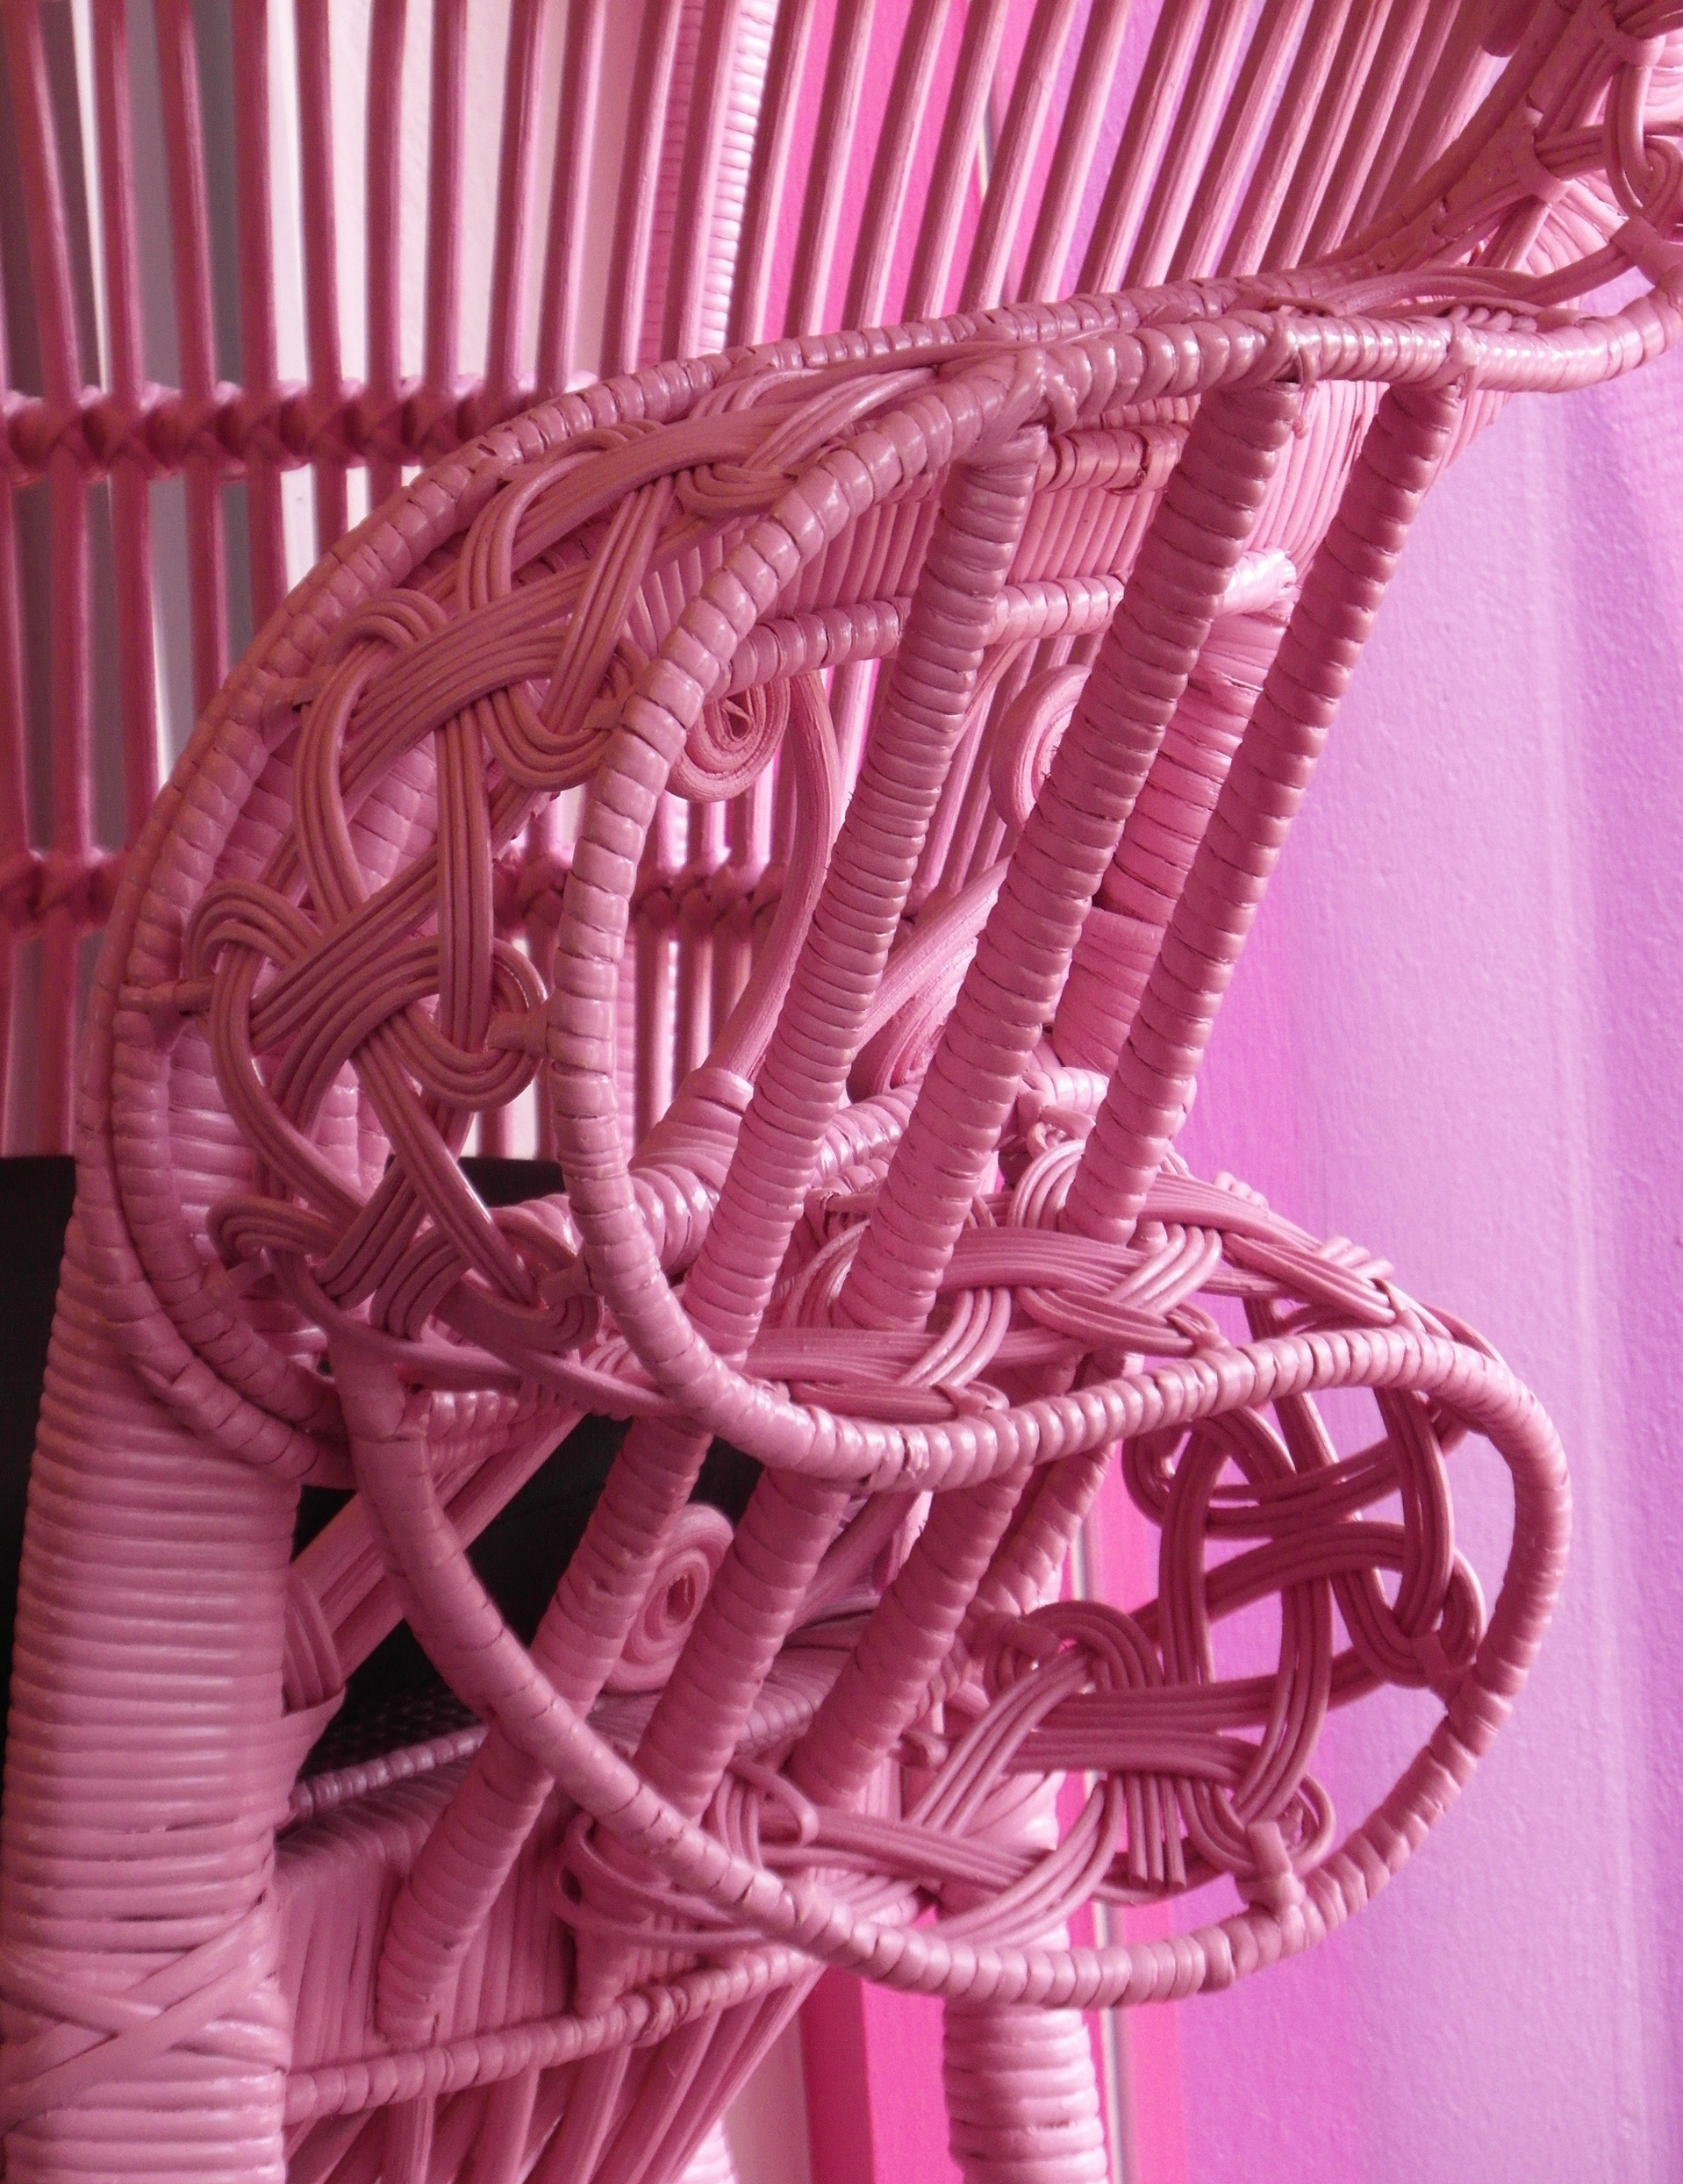 Pink wicker chair photo